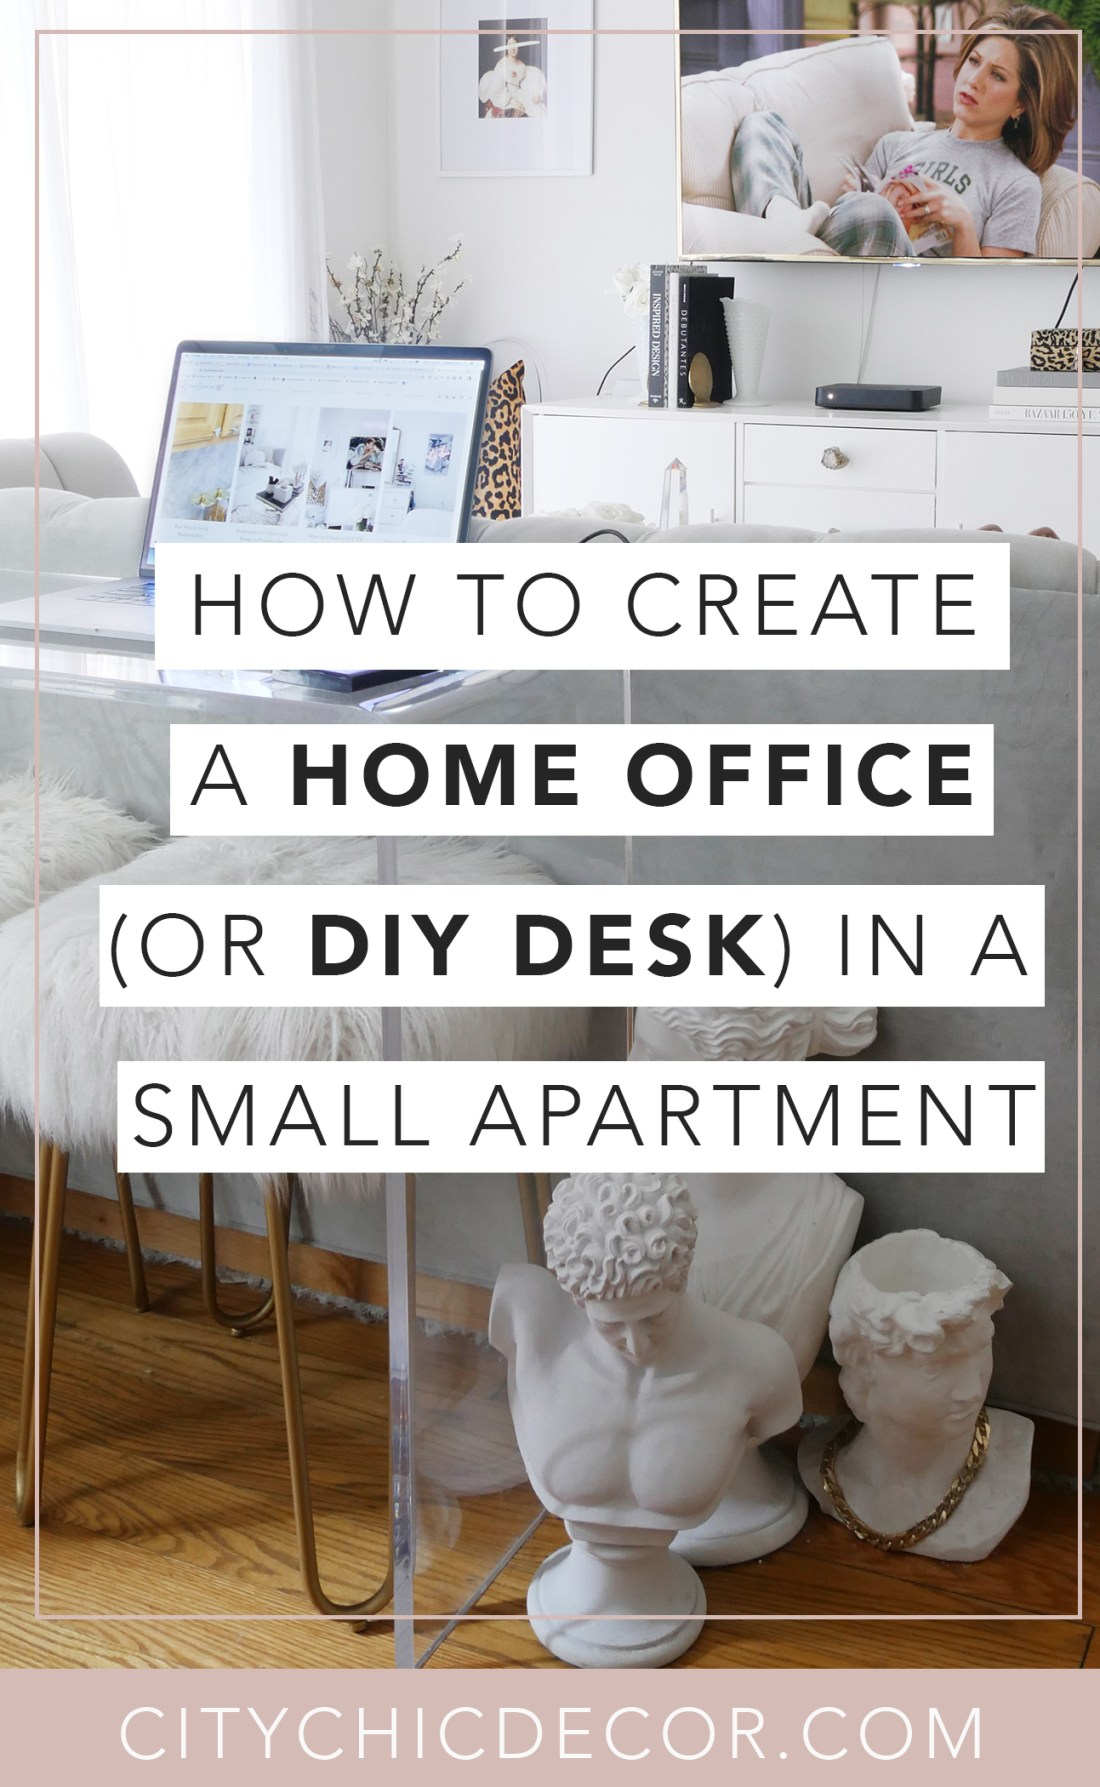 Struggling to work from home in your small apartment or studio apartment? Not having a dedicated home office in a smaller space can be frustrating. I am showing you three easy ways you can create a chic, home office and DIY desk in your small home for cheap! These home office ideas will help you create a desk setup that will allow you to easily work remotely.